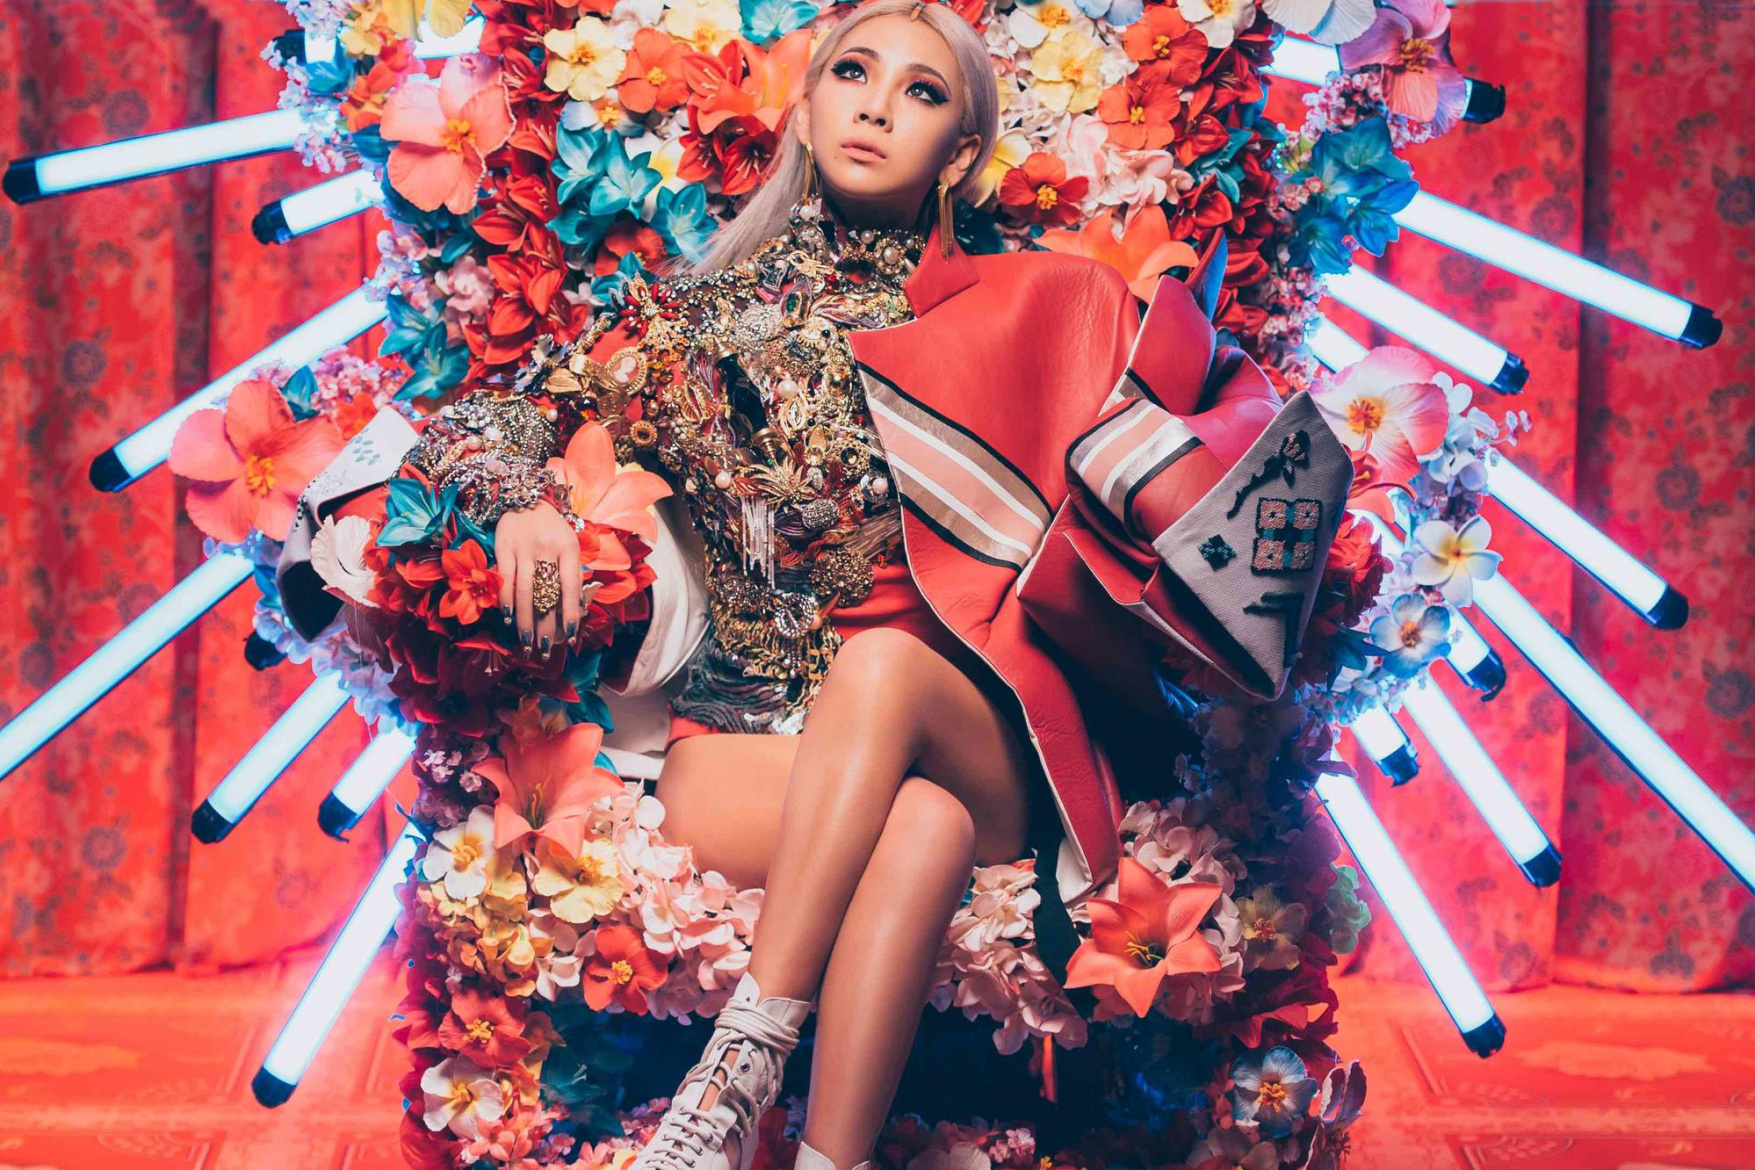 kpop sensation cl headed to atlanta for first solo north american tour gafollowers. kpop sensation cl headed to atlanta for first solo north american